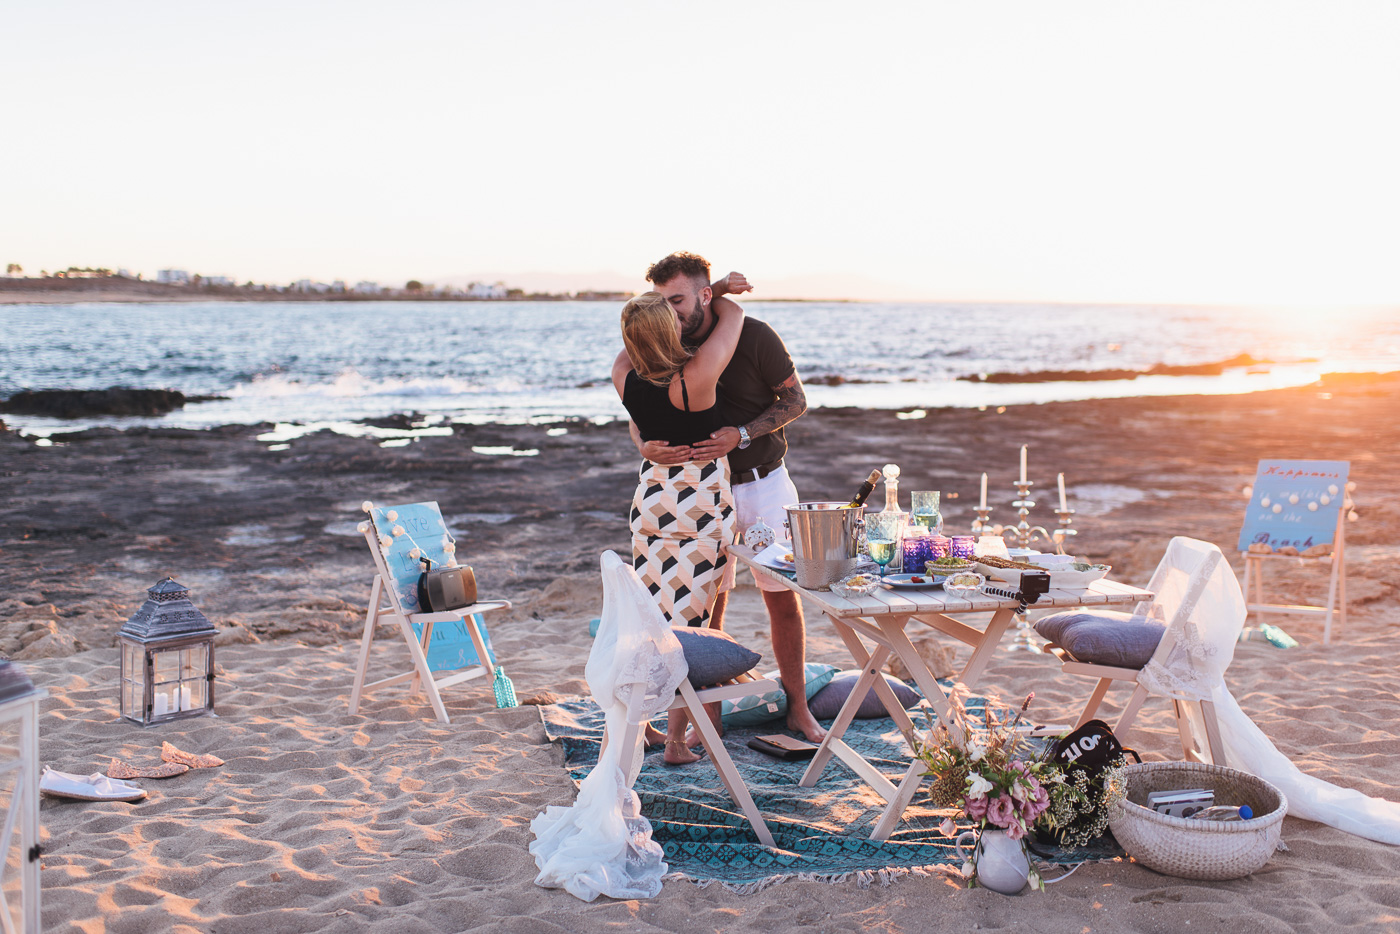 Wedding proposal on the beach in Chania Crete Greece